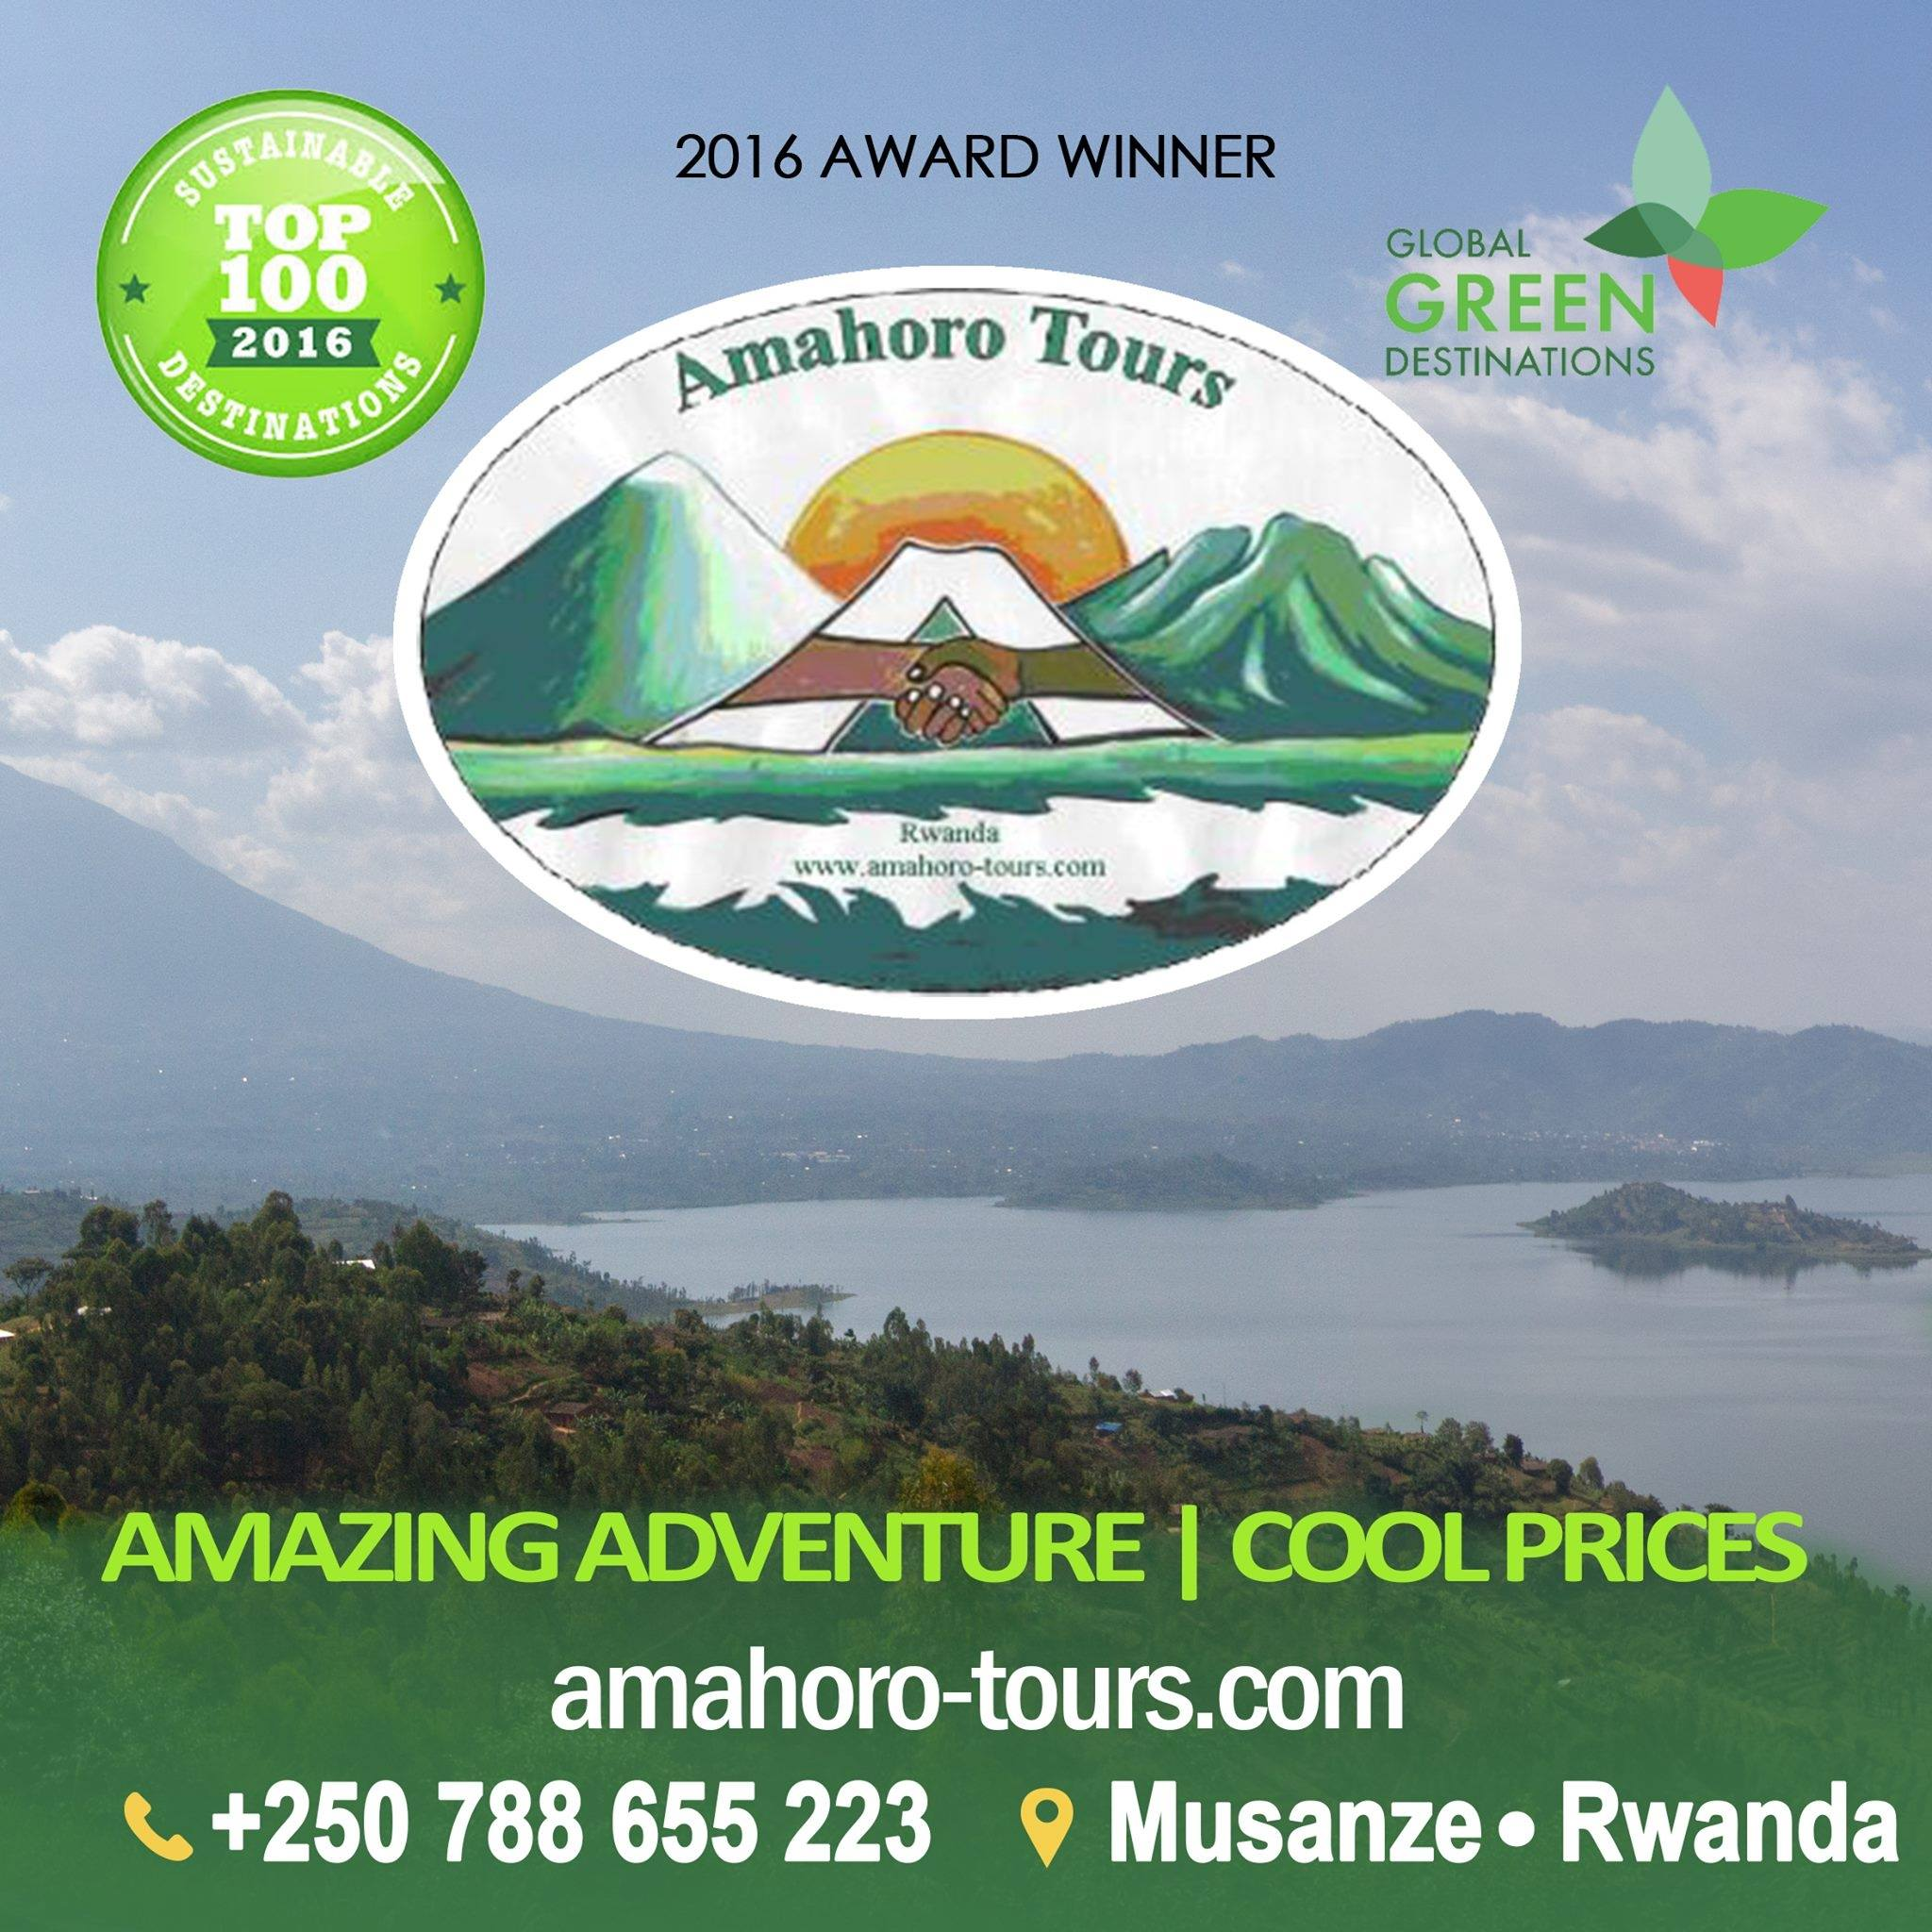 Amahoro Tours Responsible Tourism & Eco-Tourism in Rwanda, Uganda and the Democratic Republic of Congo